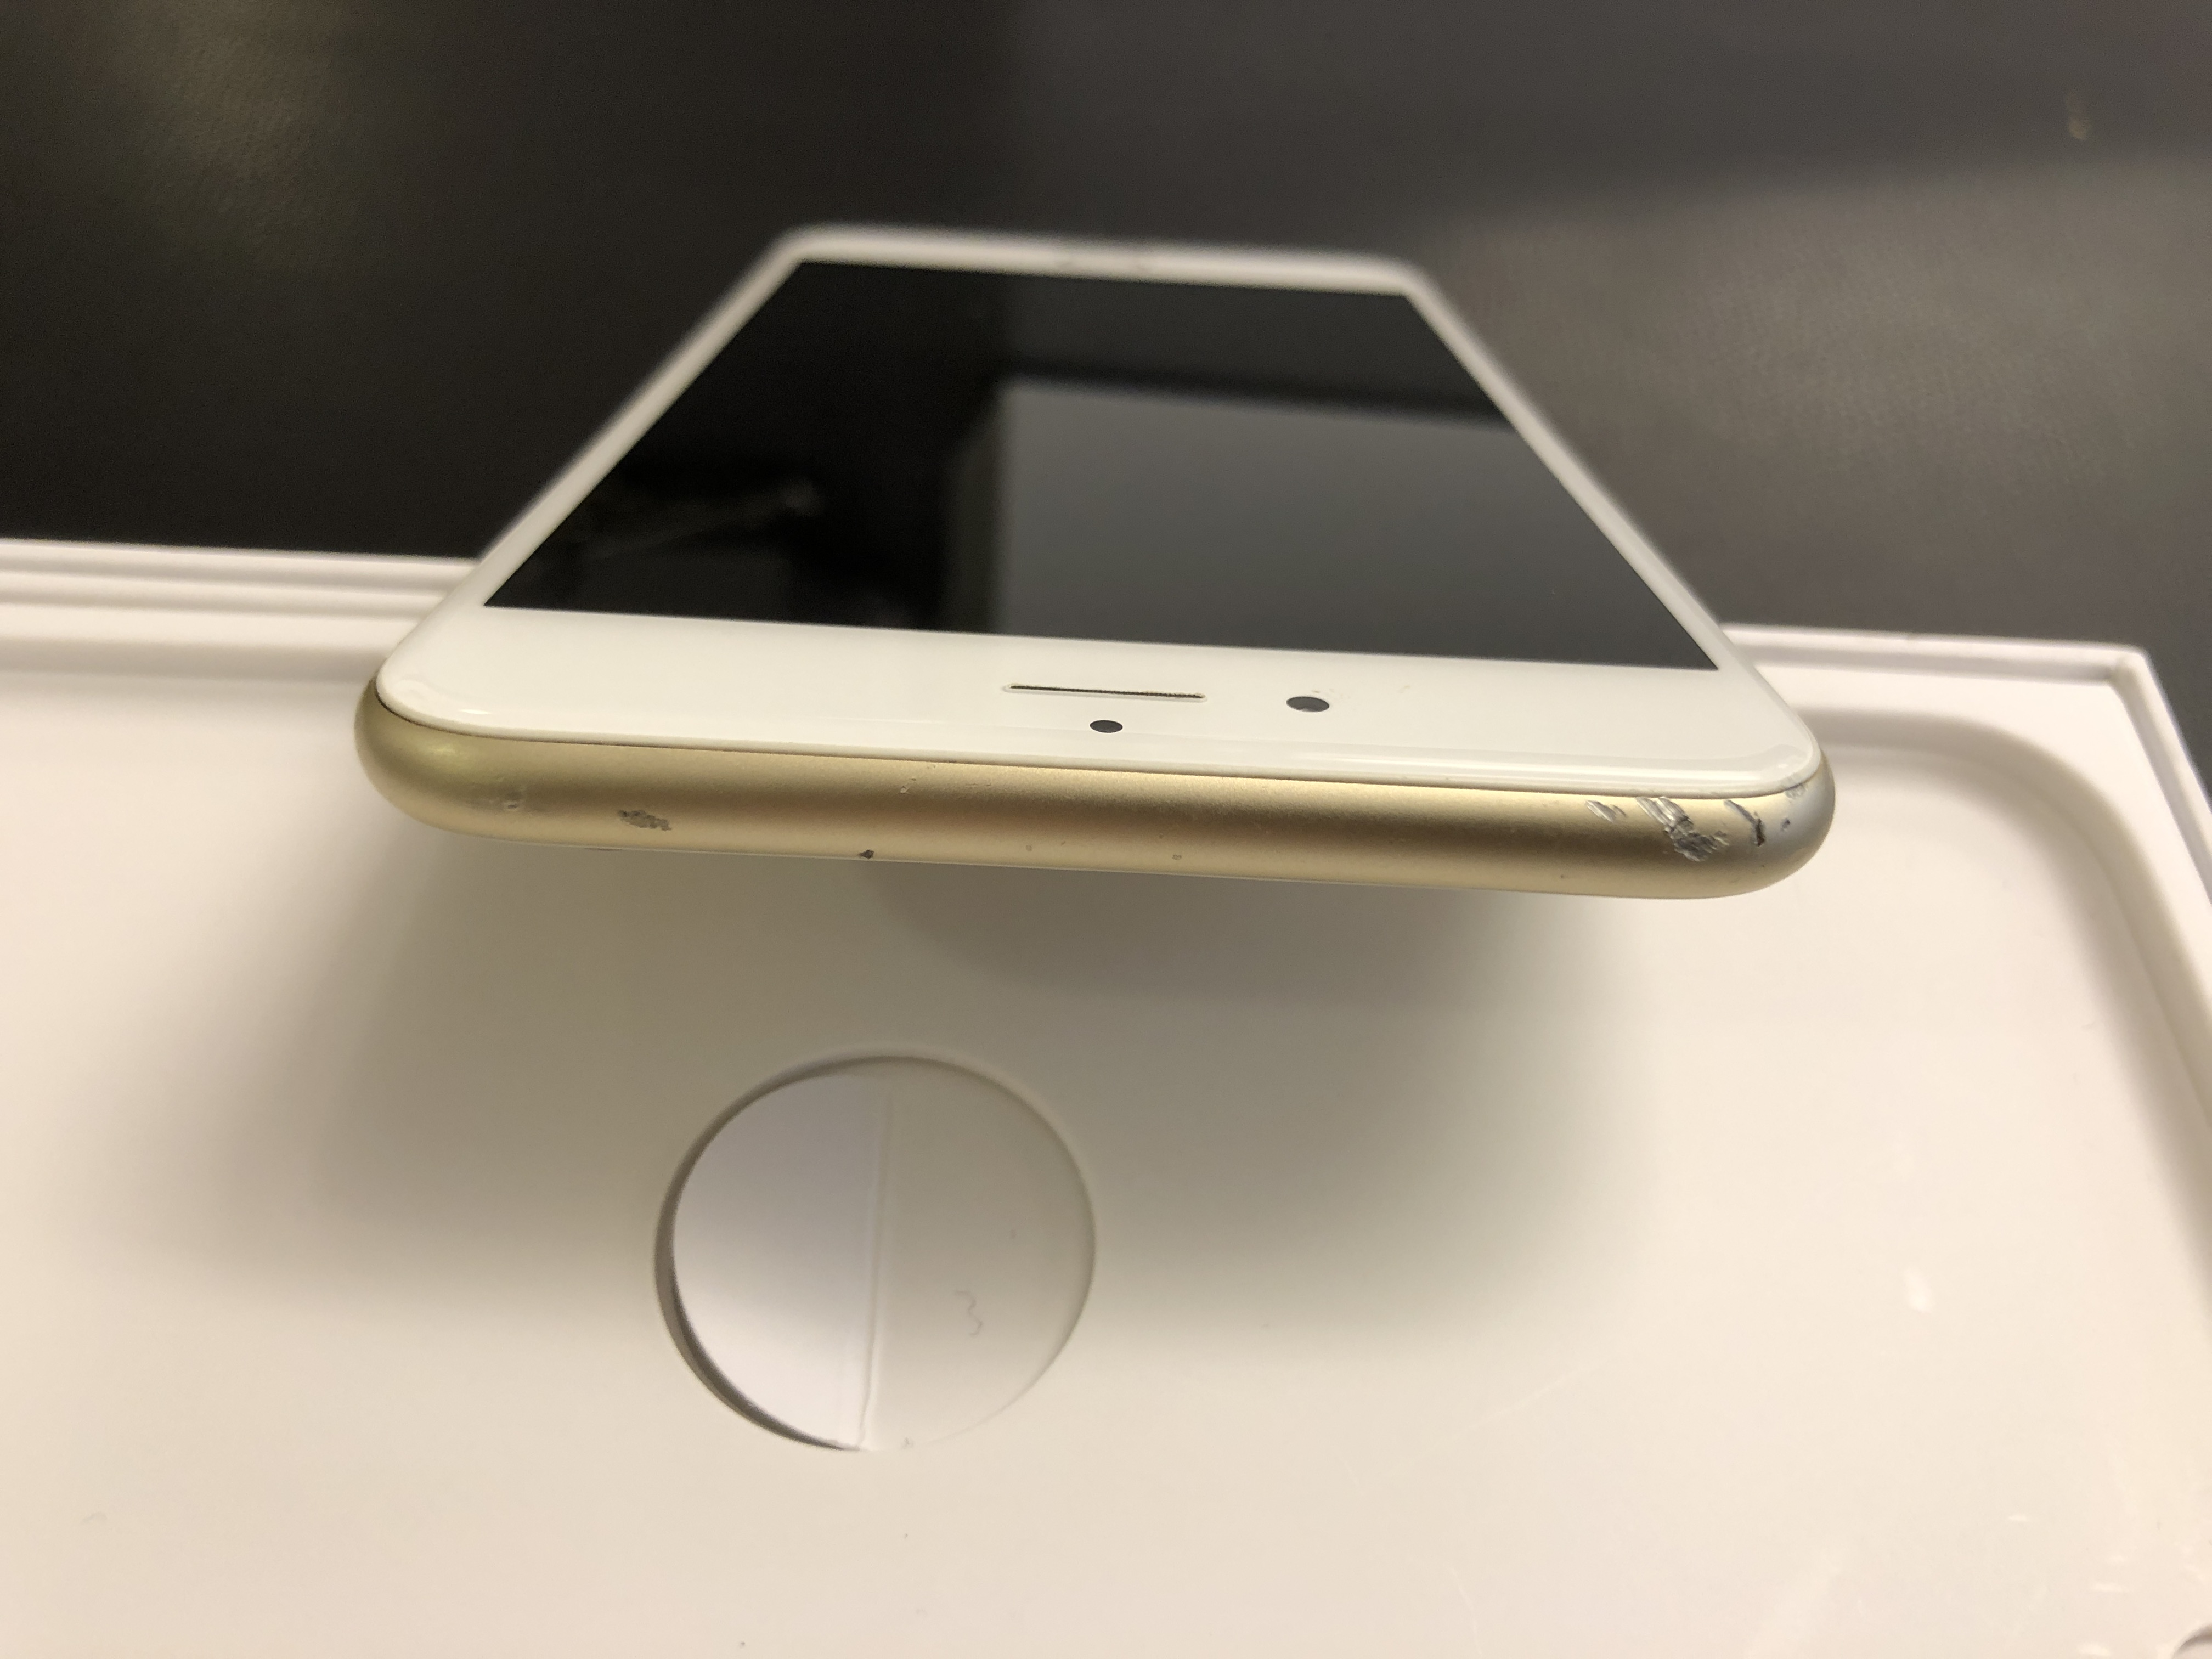 iPhone 6 Plus 128GB, 128GB, Gold, bild 6